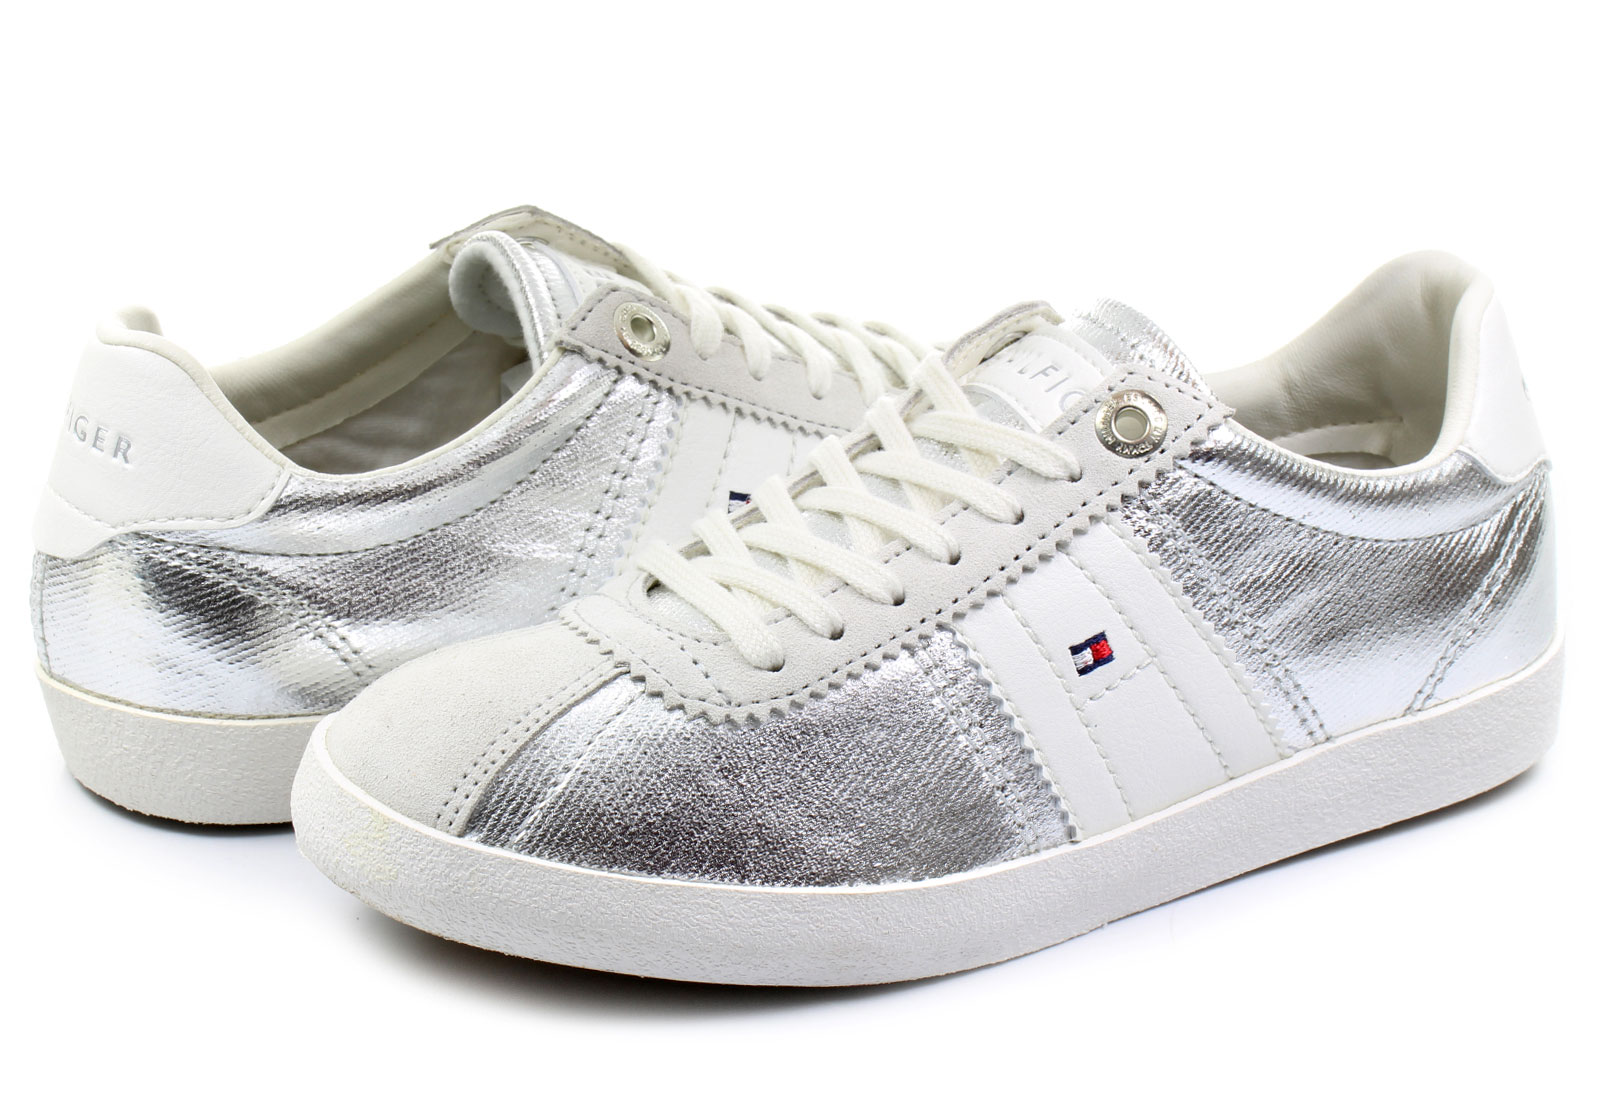 tommy hilfiger shoes lizzie 1d1 16s 0805 483 online shop for sneakers shoes and boots. Black Bedroom Furniture Sets. Home Design Ideas